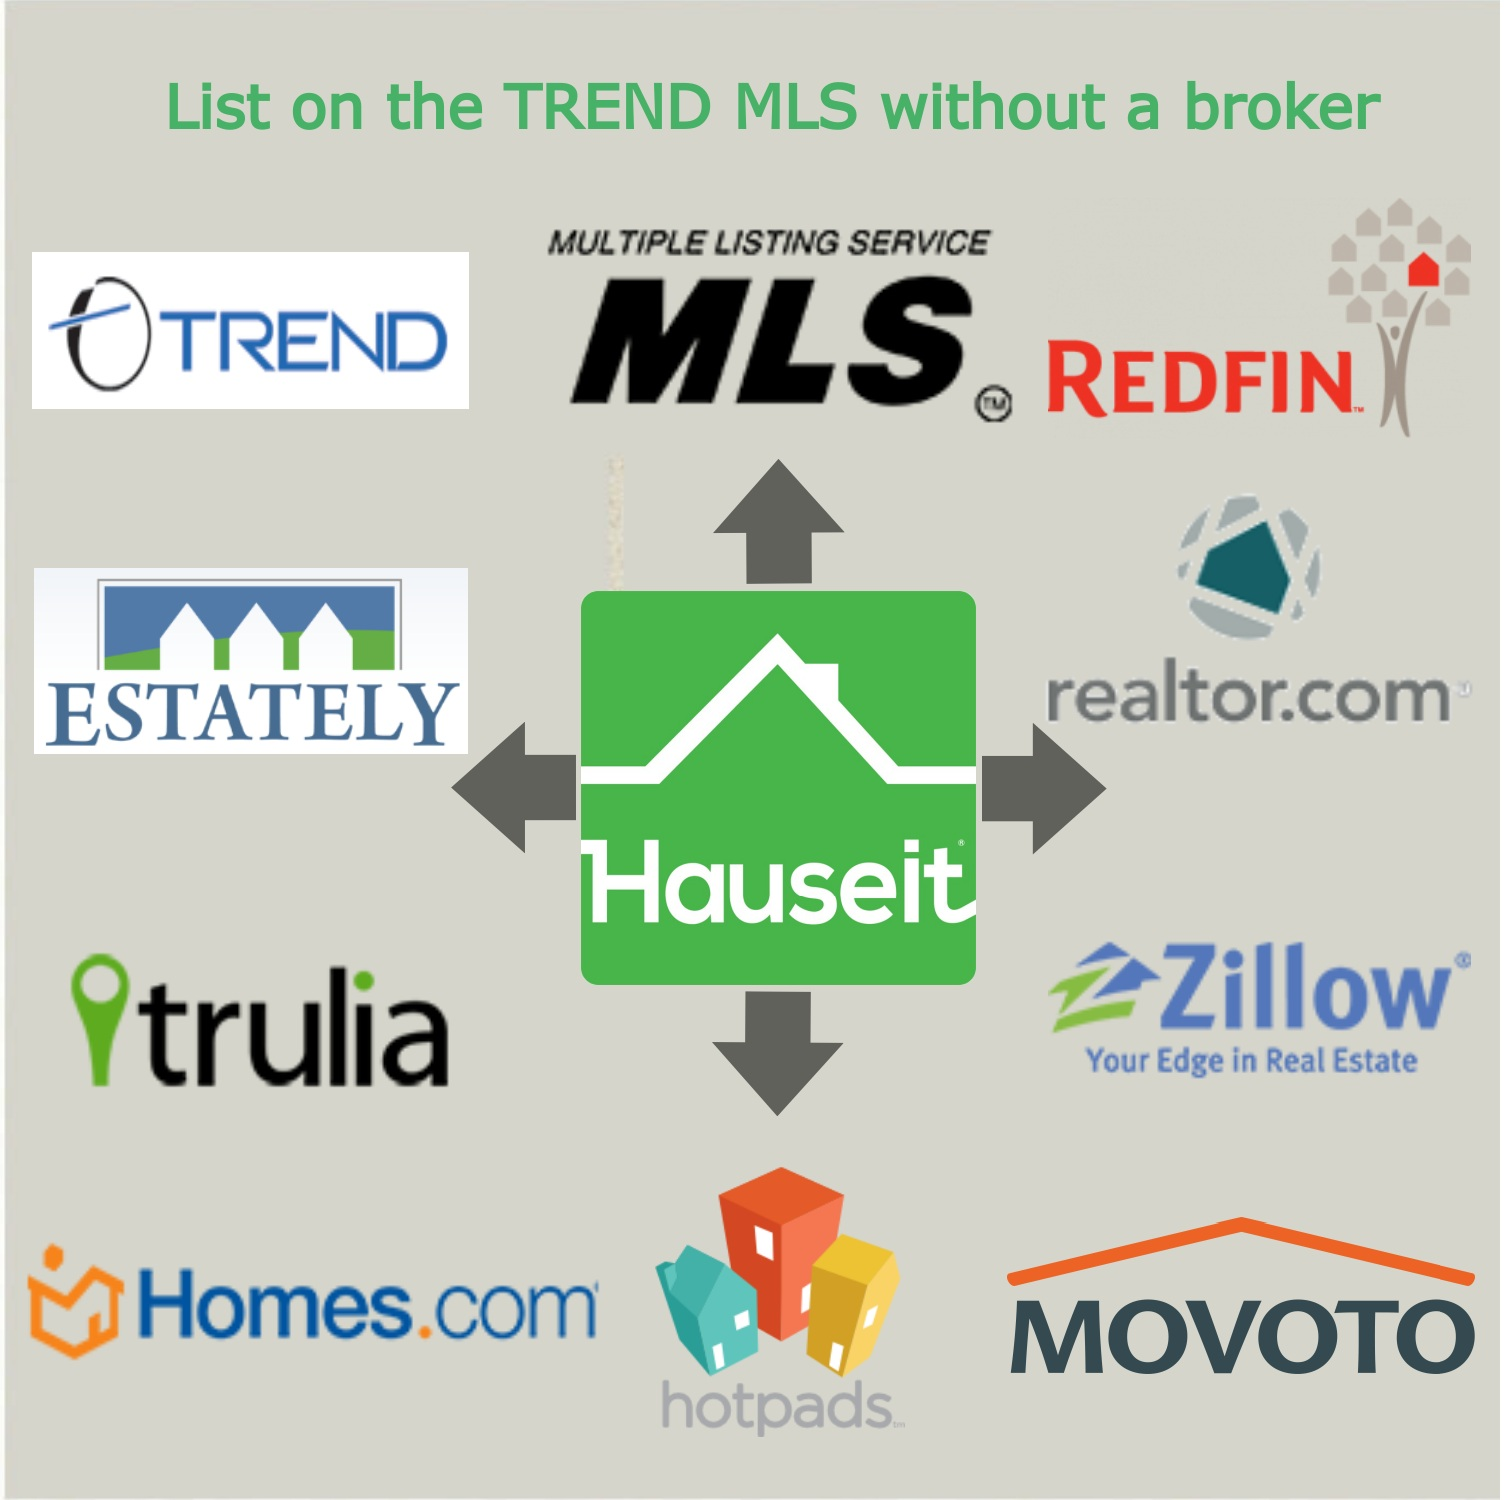 Hauseit's Philadelphia Flat Fee MLS product lists your home on the TREND MLS and dozens more sites like RedFin, Estately, Realtor.com, Trulia, Movoto, Hotpads, Zillow and Homes.com